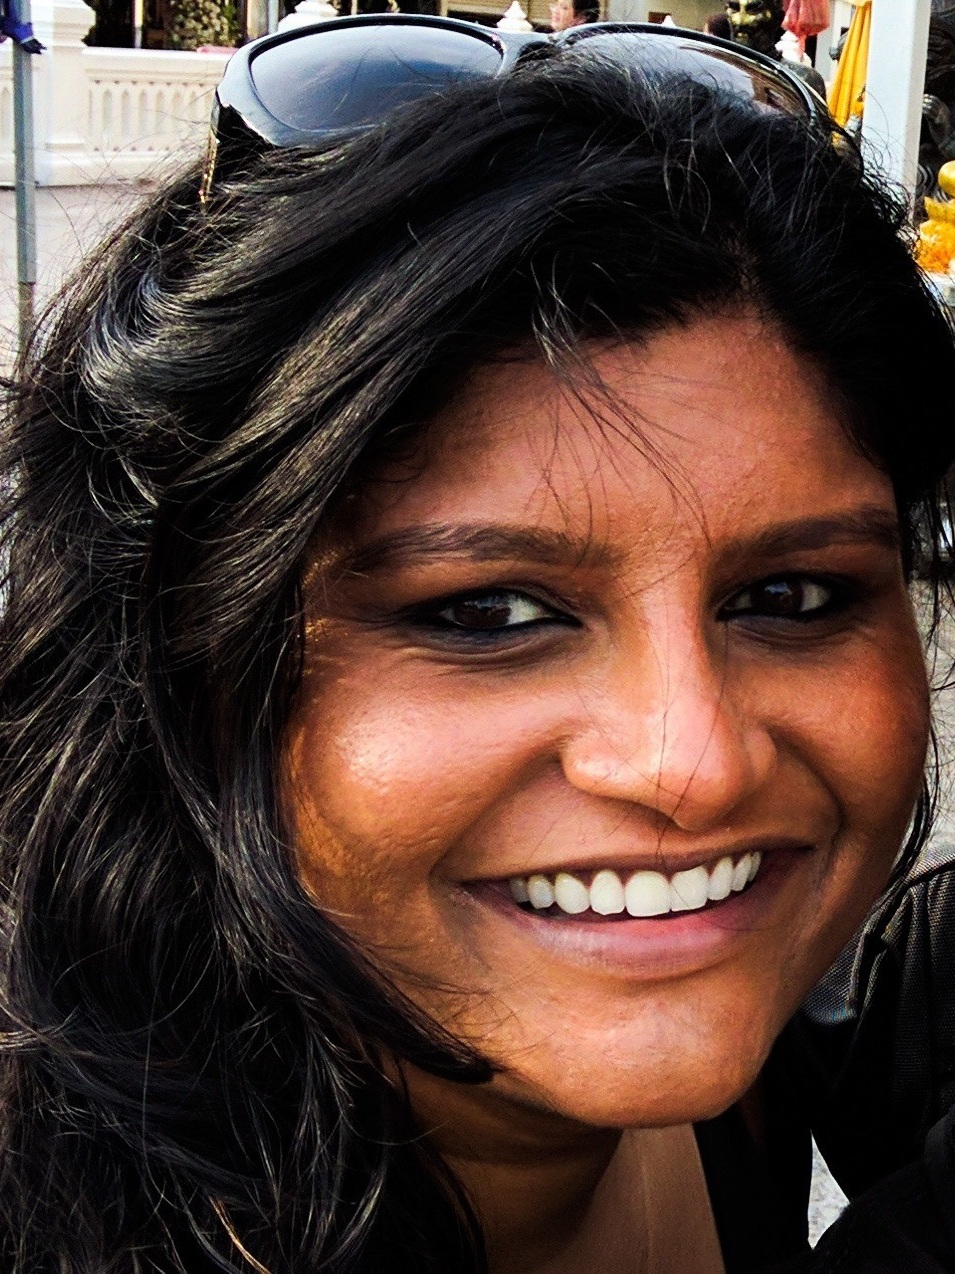 Zena Patel - General Counsel and Co-Founder of JetSet